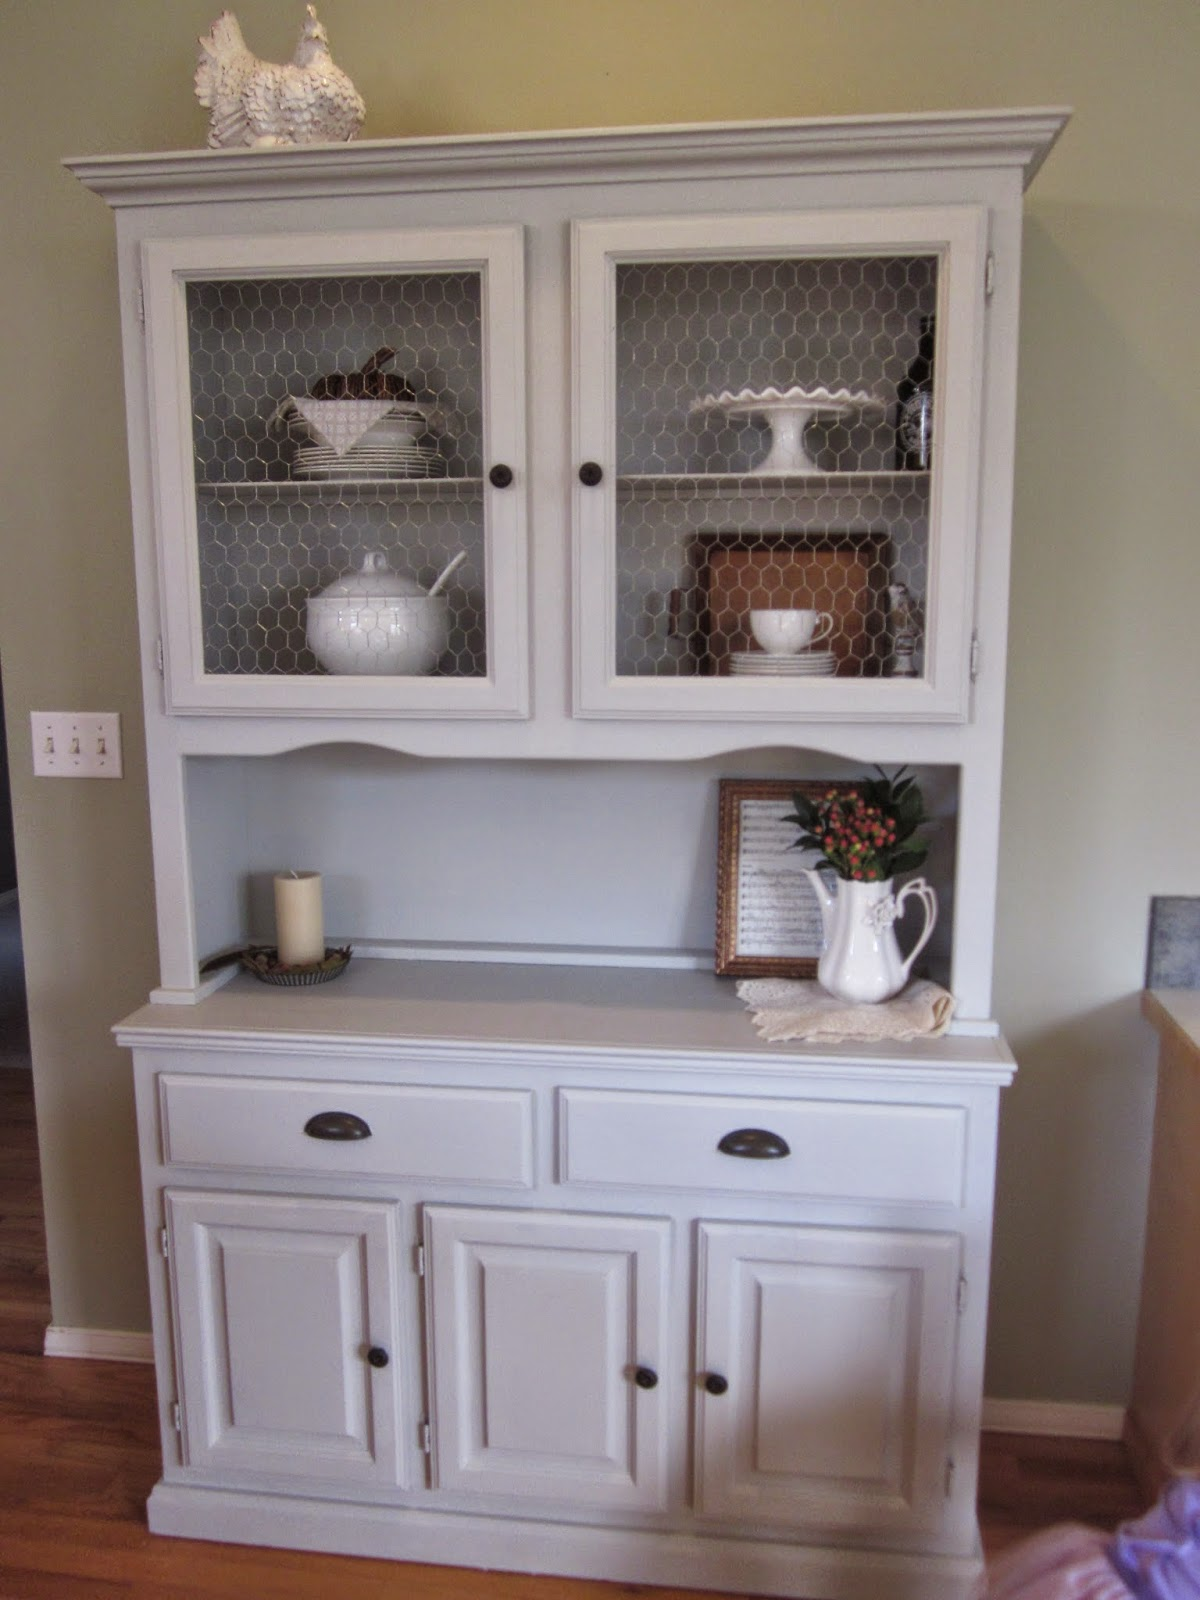 Princes Ponies and Diamonds A New Kitchen Hutch